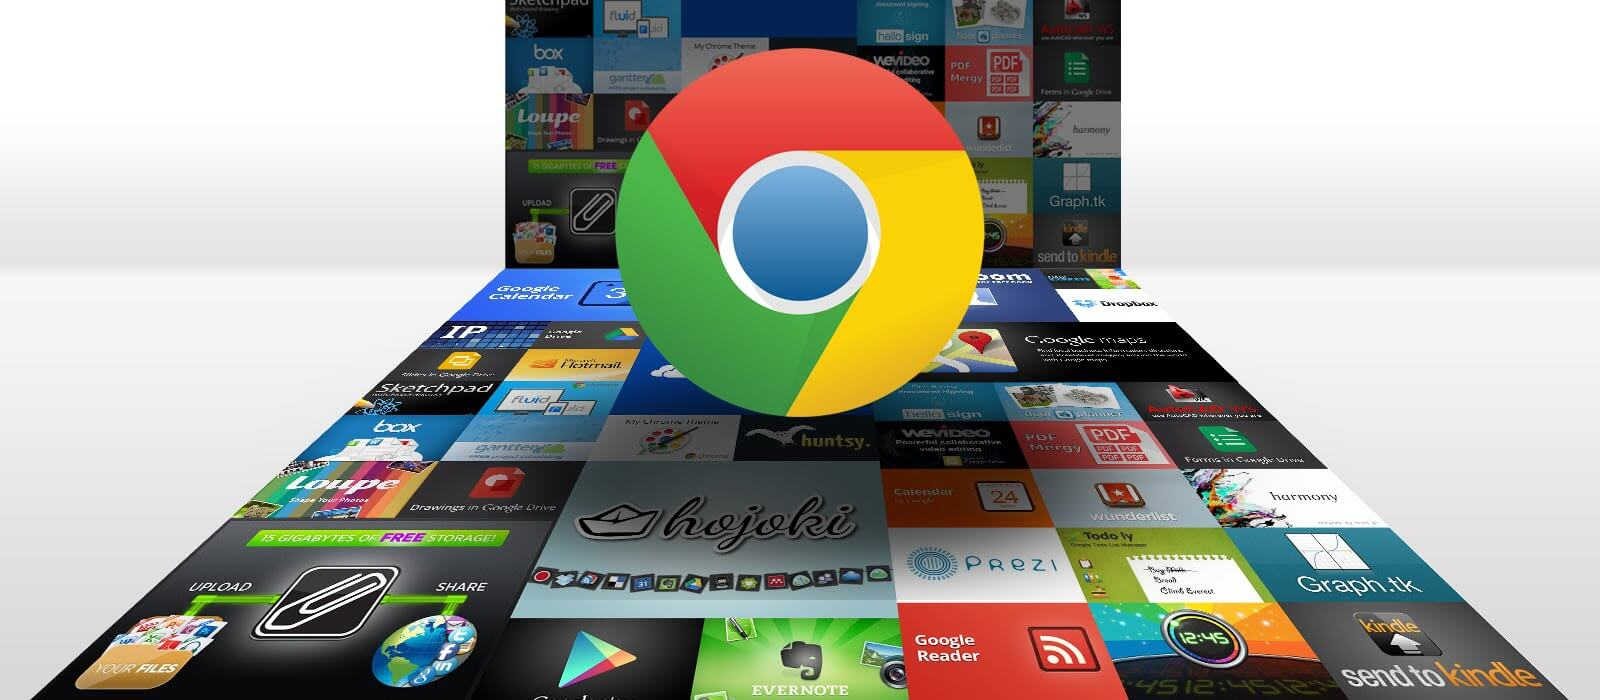 Google Chrome Api Changes Could Break Support For Numerous Plugins